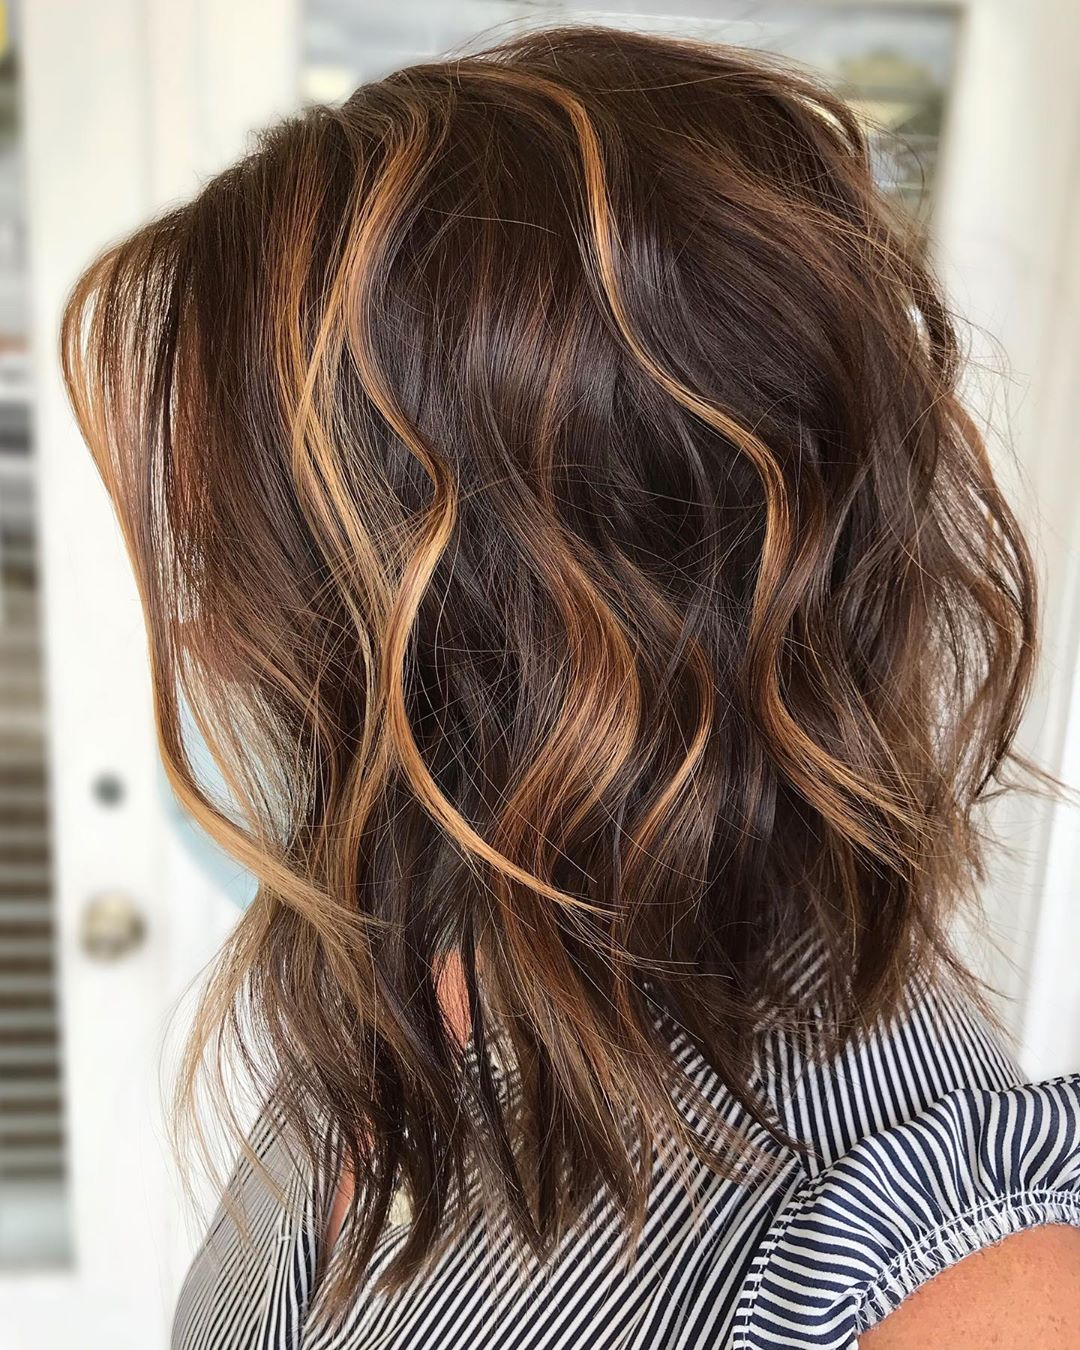 Brown Bob with Thin Caramel Highlights